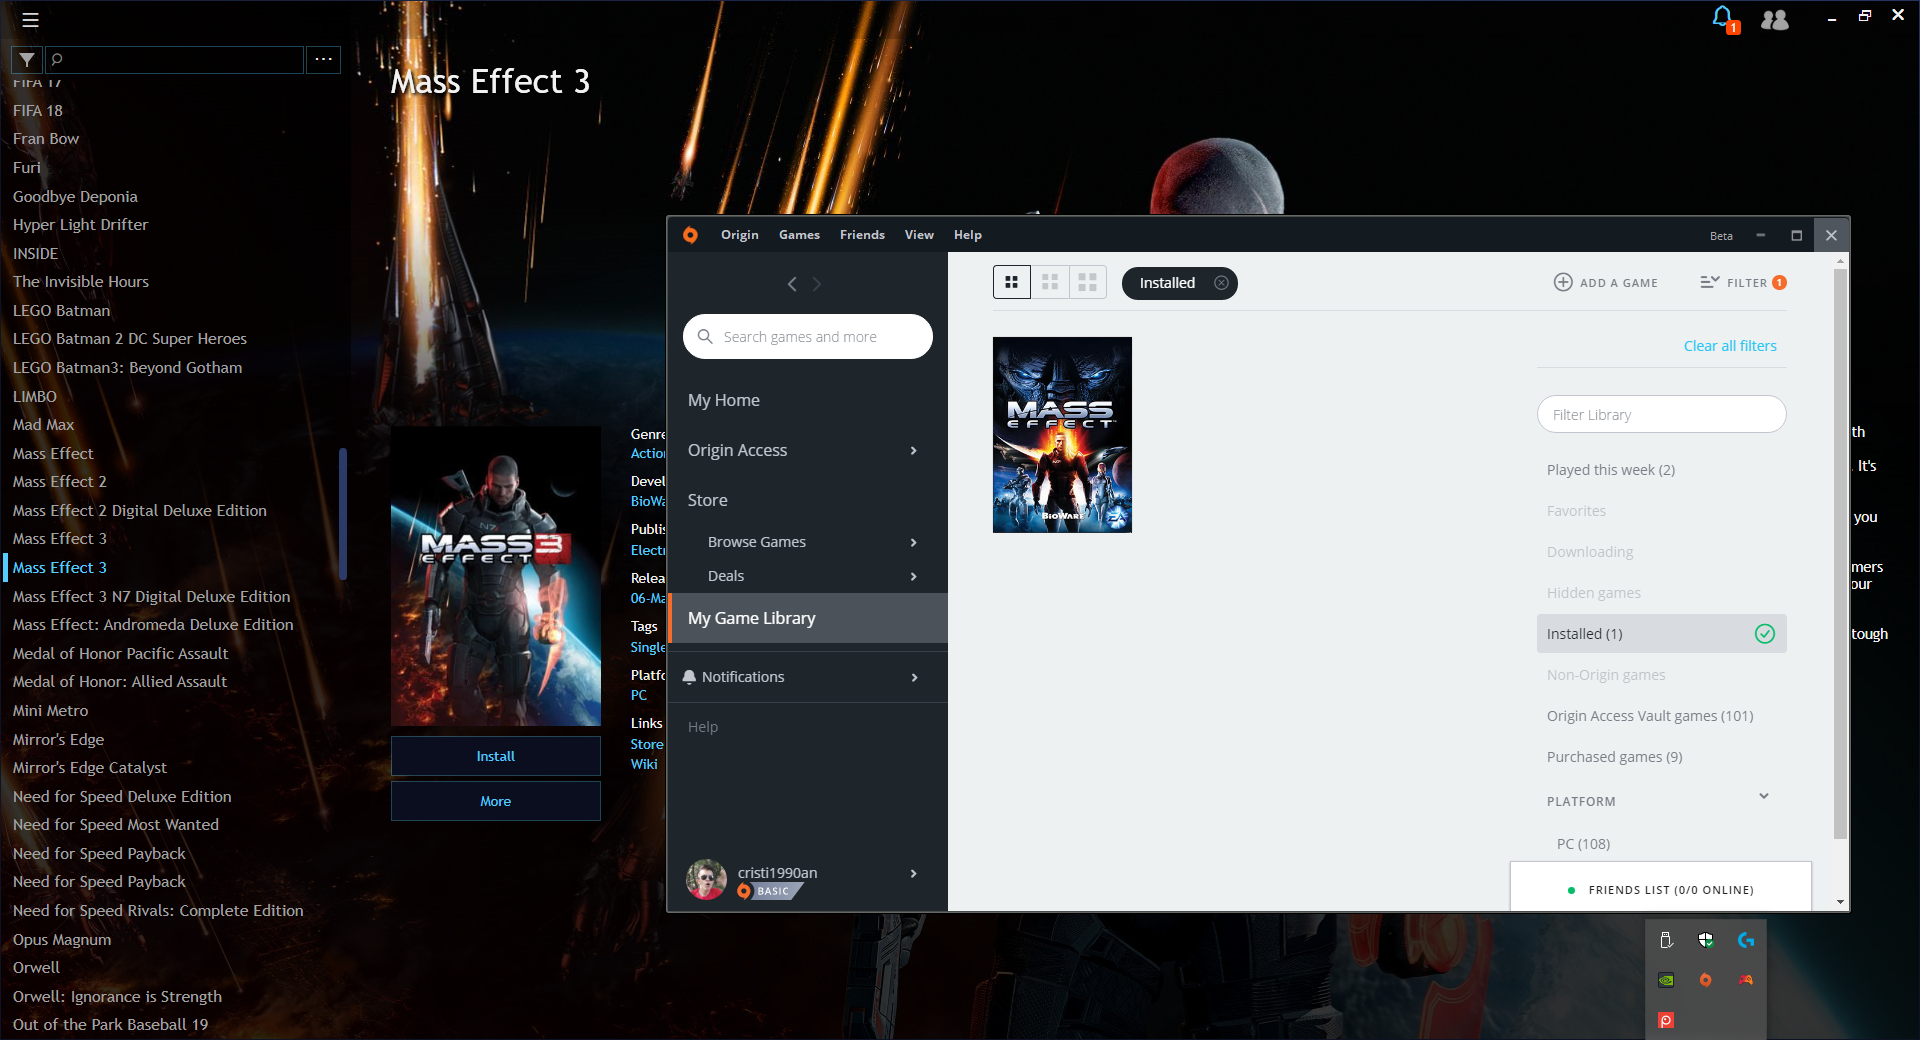 Origin games don't show up as installed · Issue #901